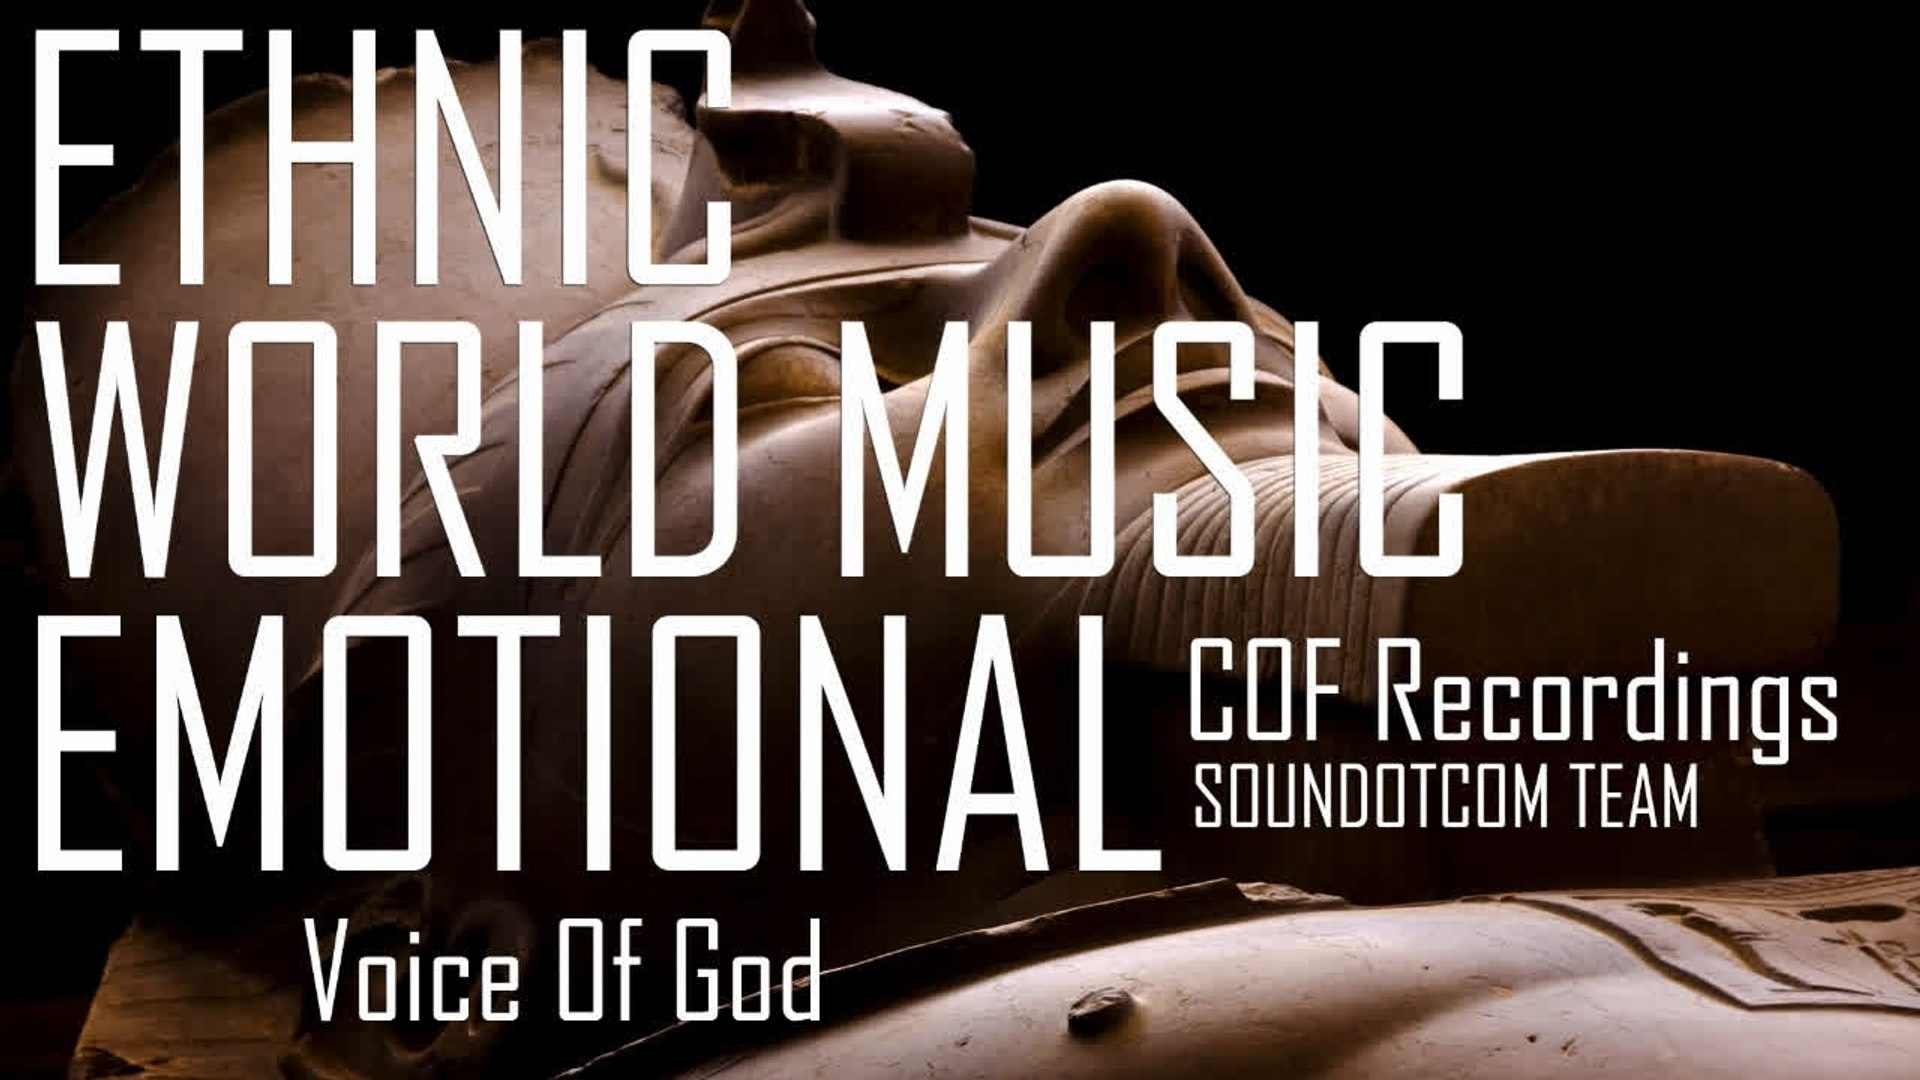 Royalty Free Music DOWNLOAD - World Music Ethnic Documentary | Voice Of God